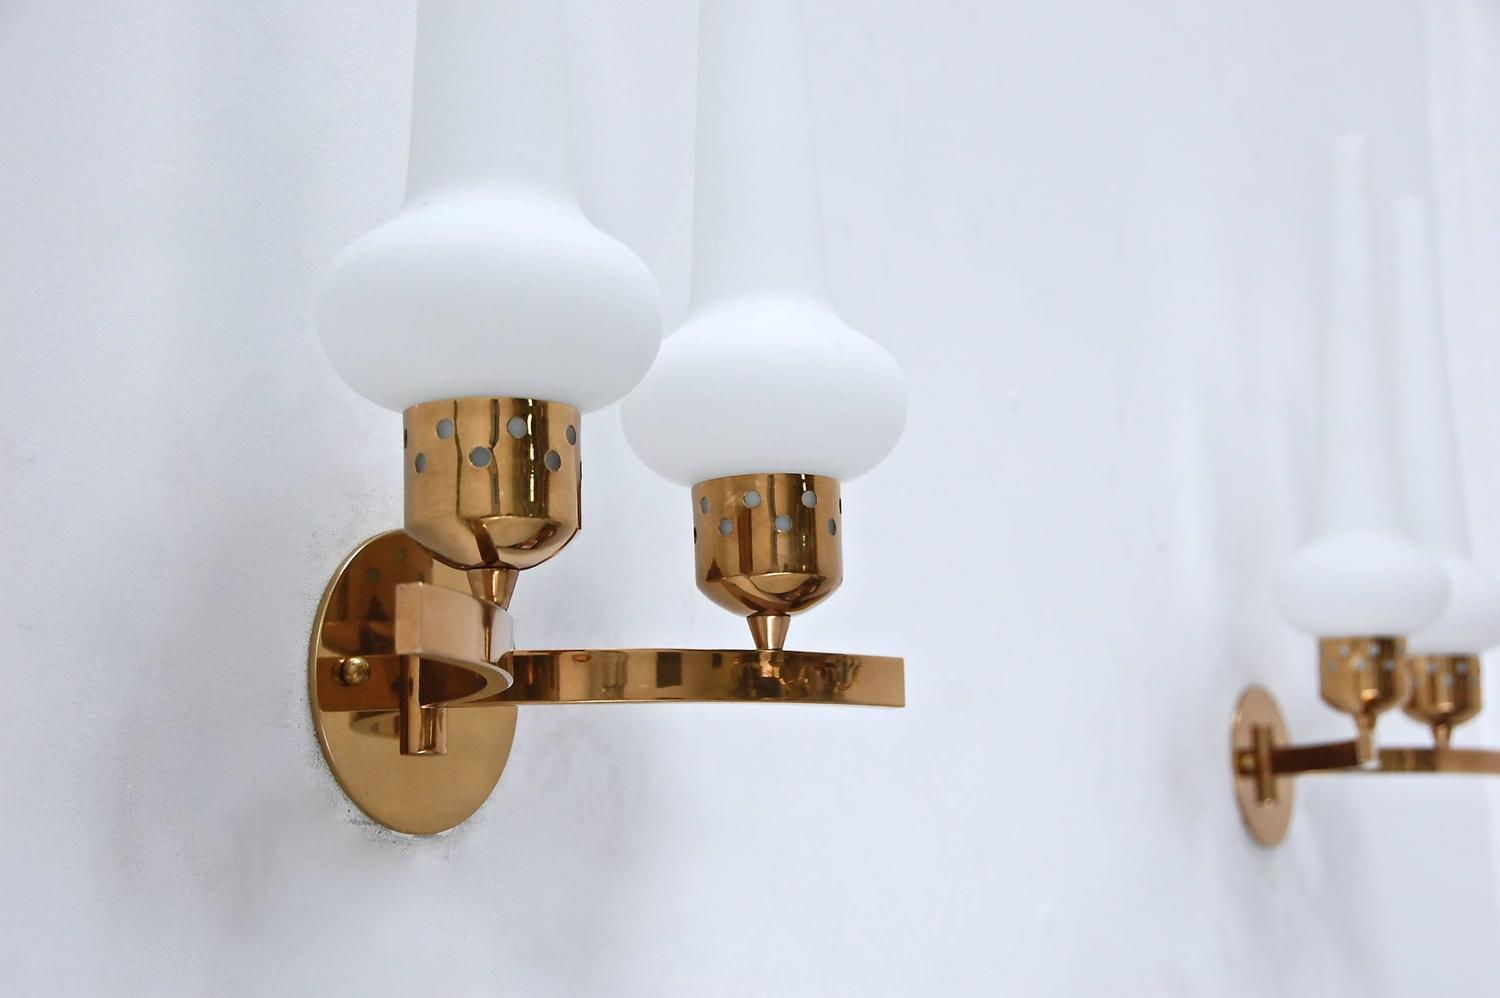 Double Shade Italian Sconces For Sale at 1stdibs